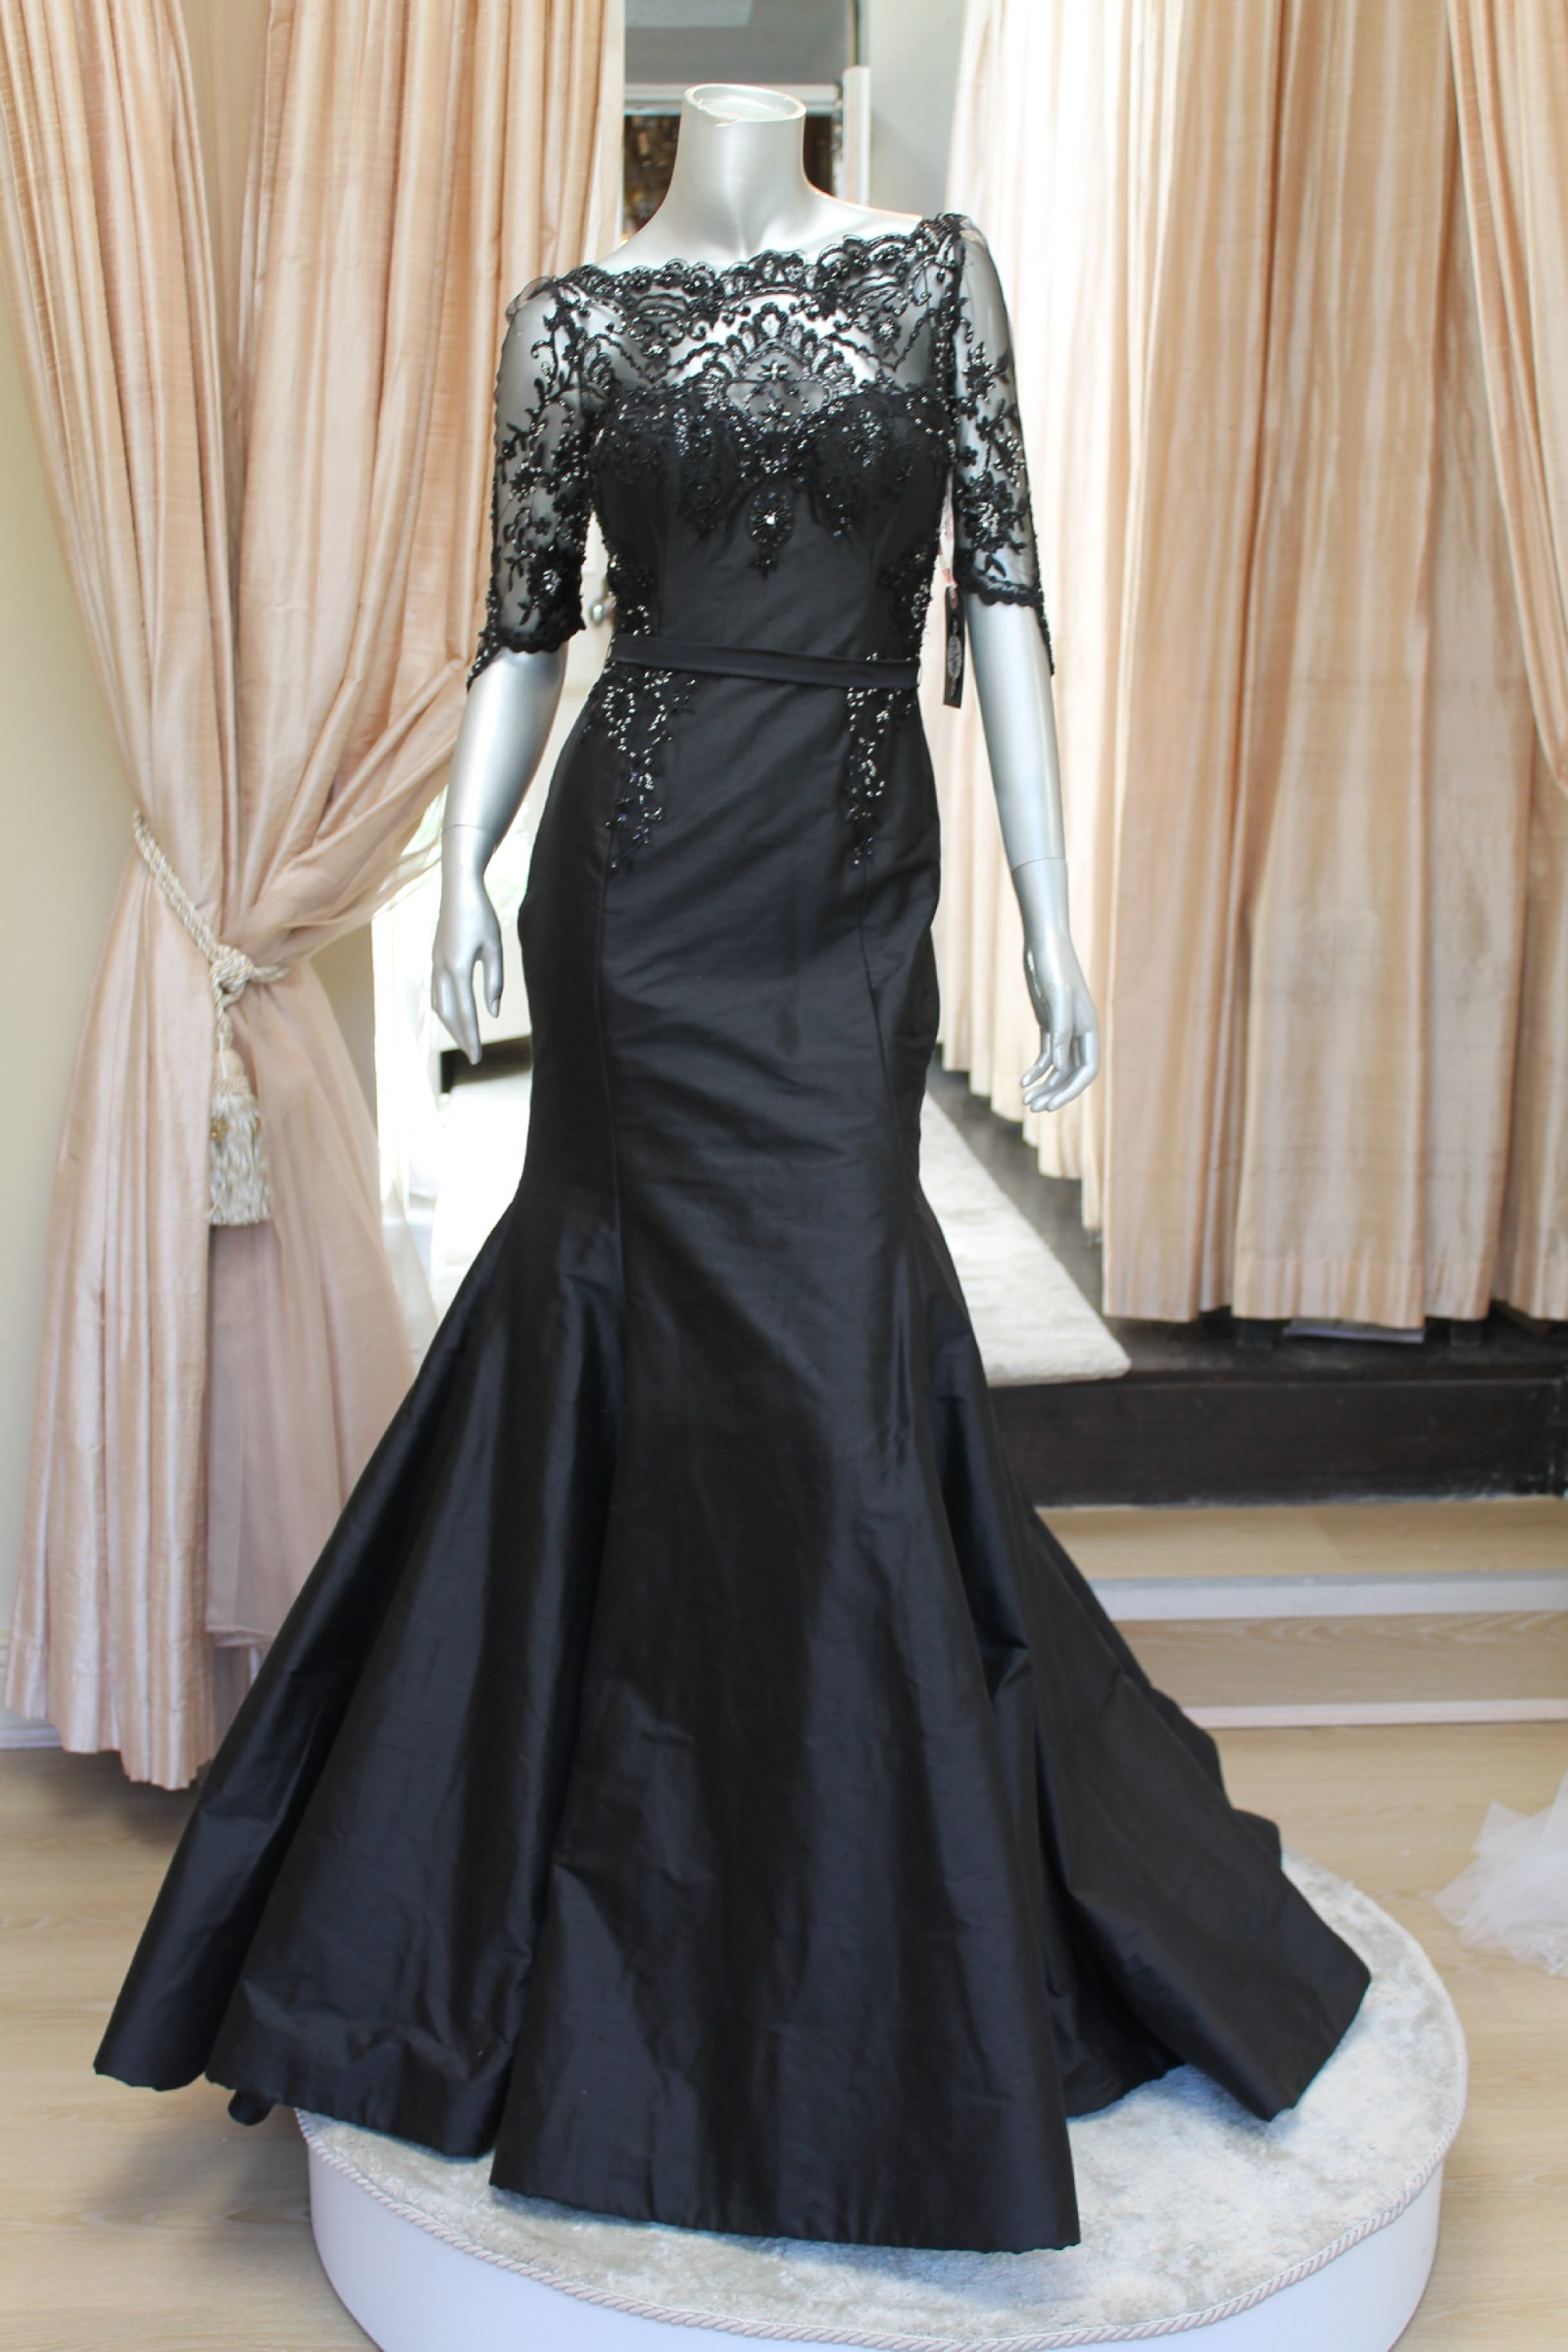 Rosalynn win haute couture one off evening gown sample for Haute couture sale